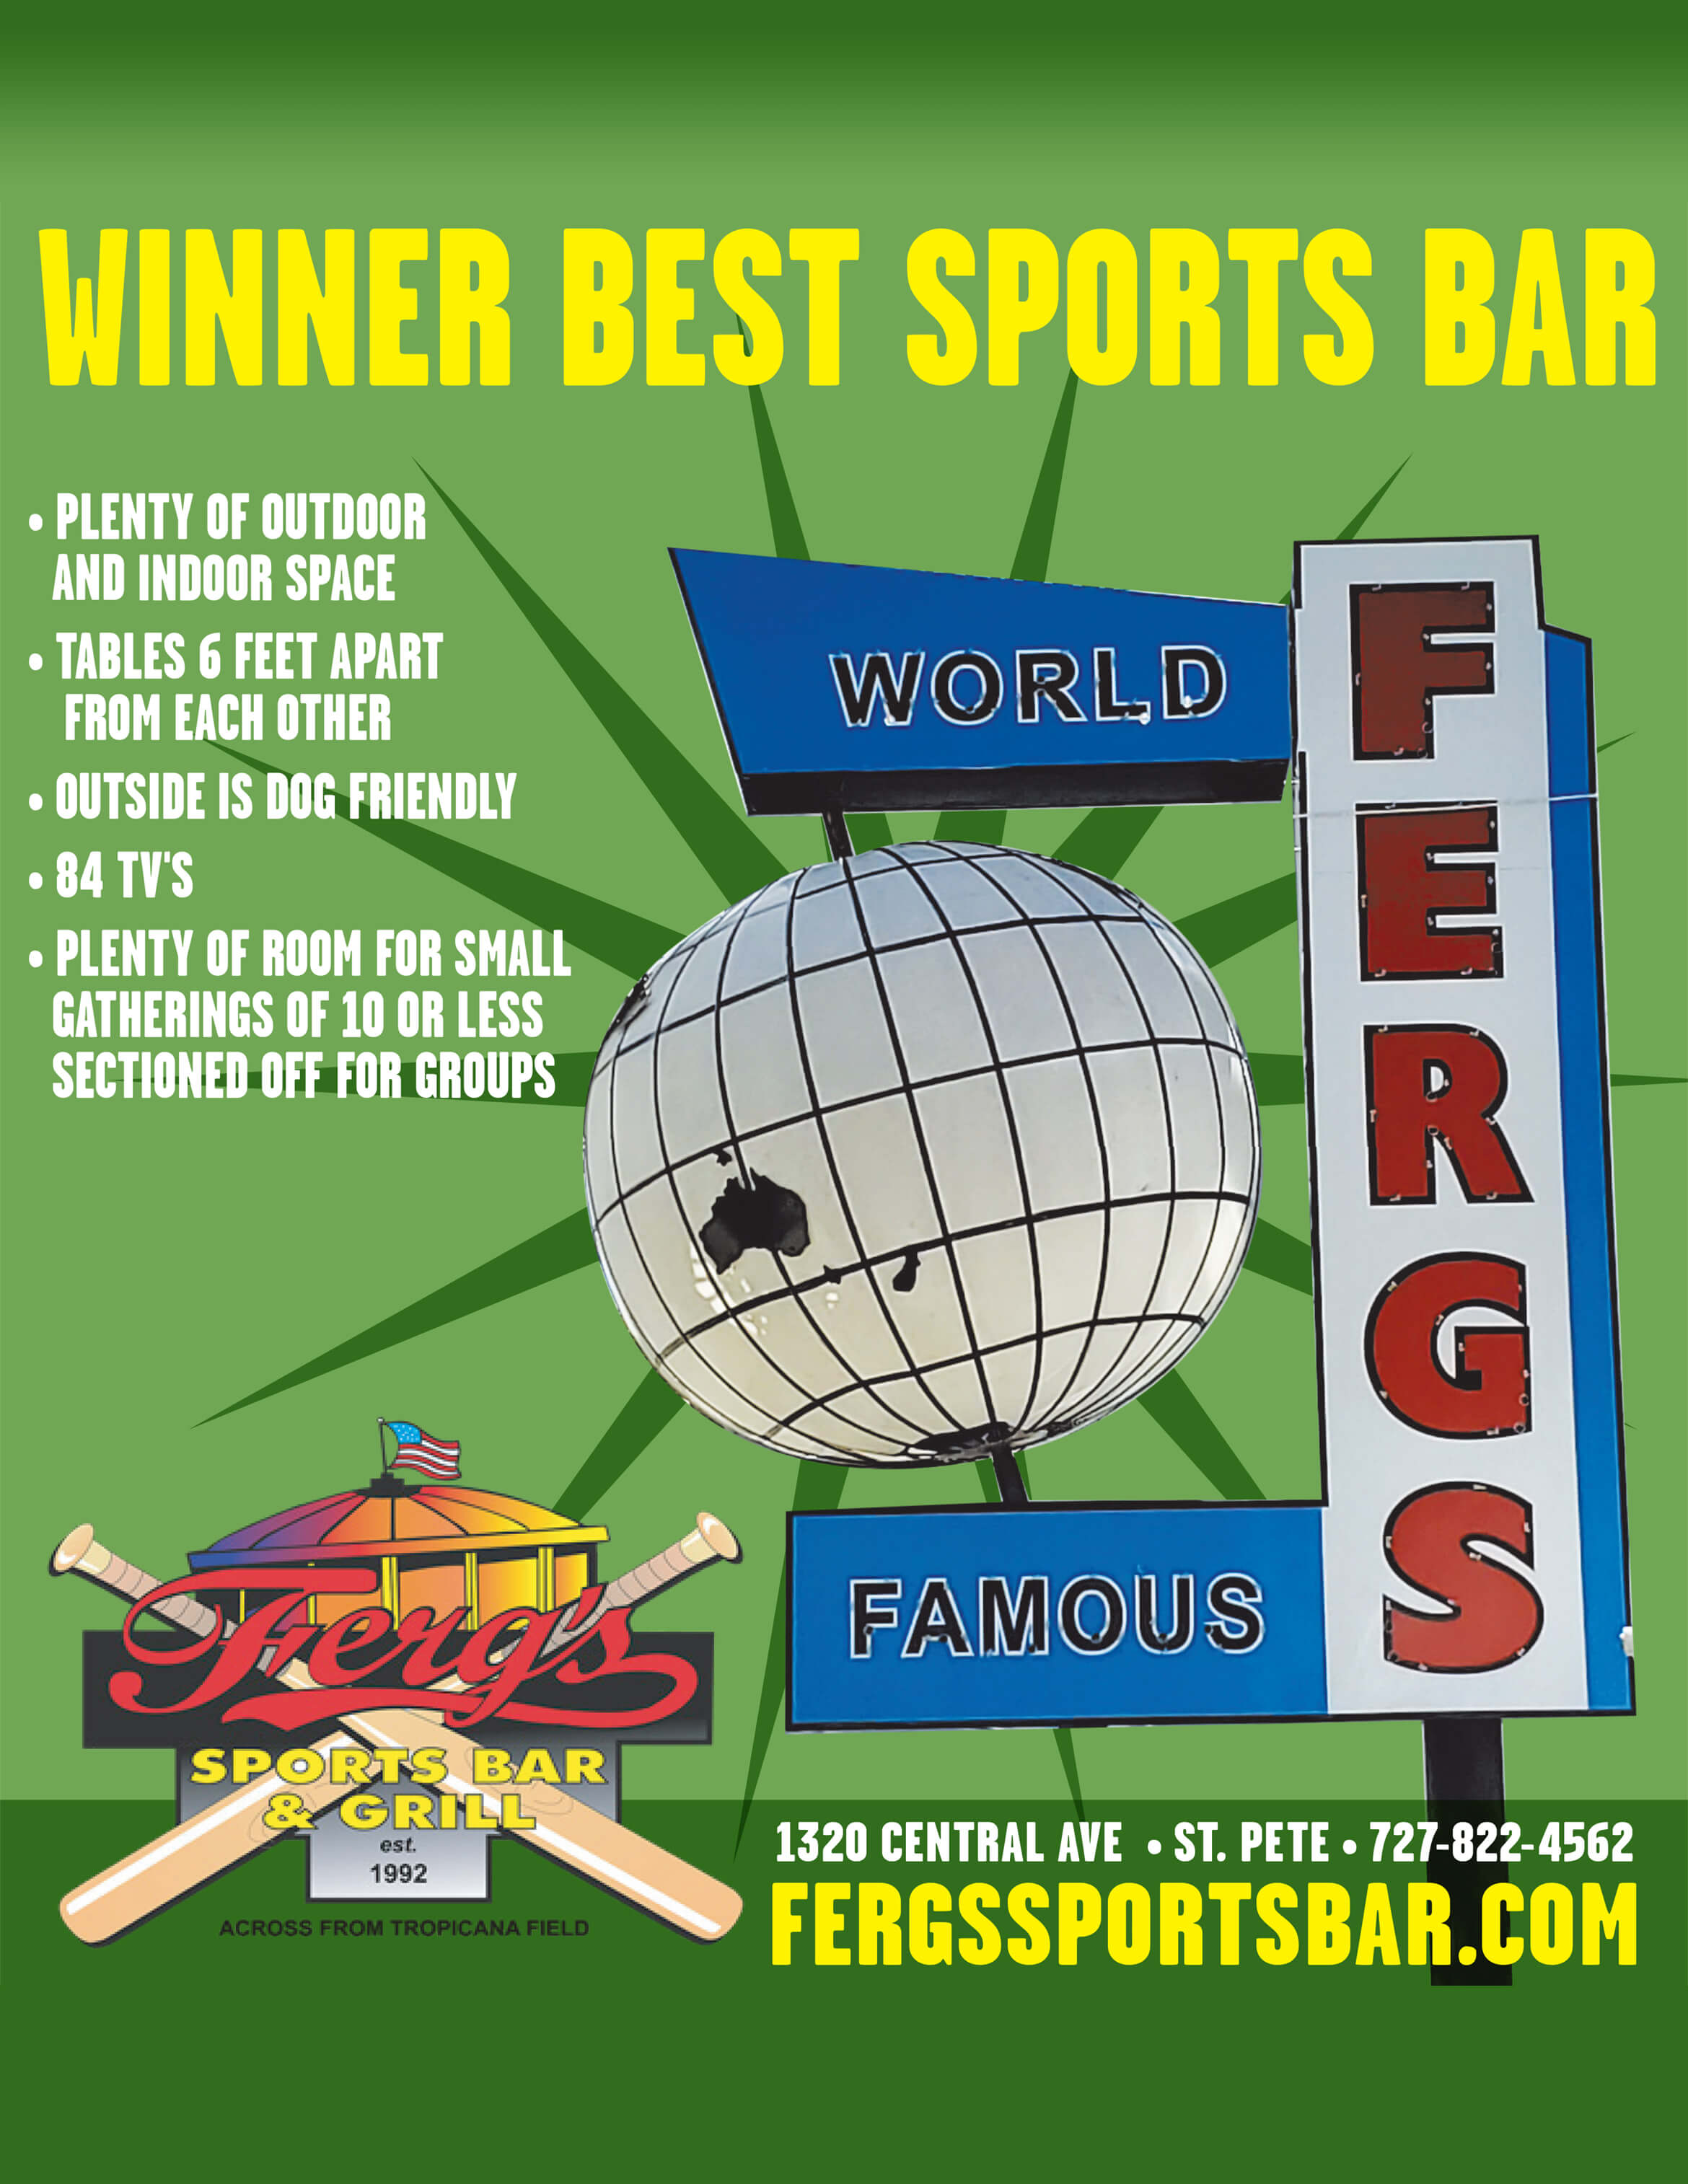 Ferg's Winner Best Sports Bar